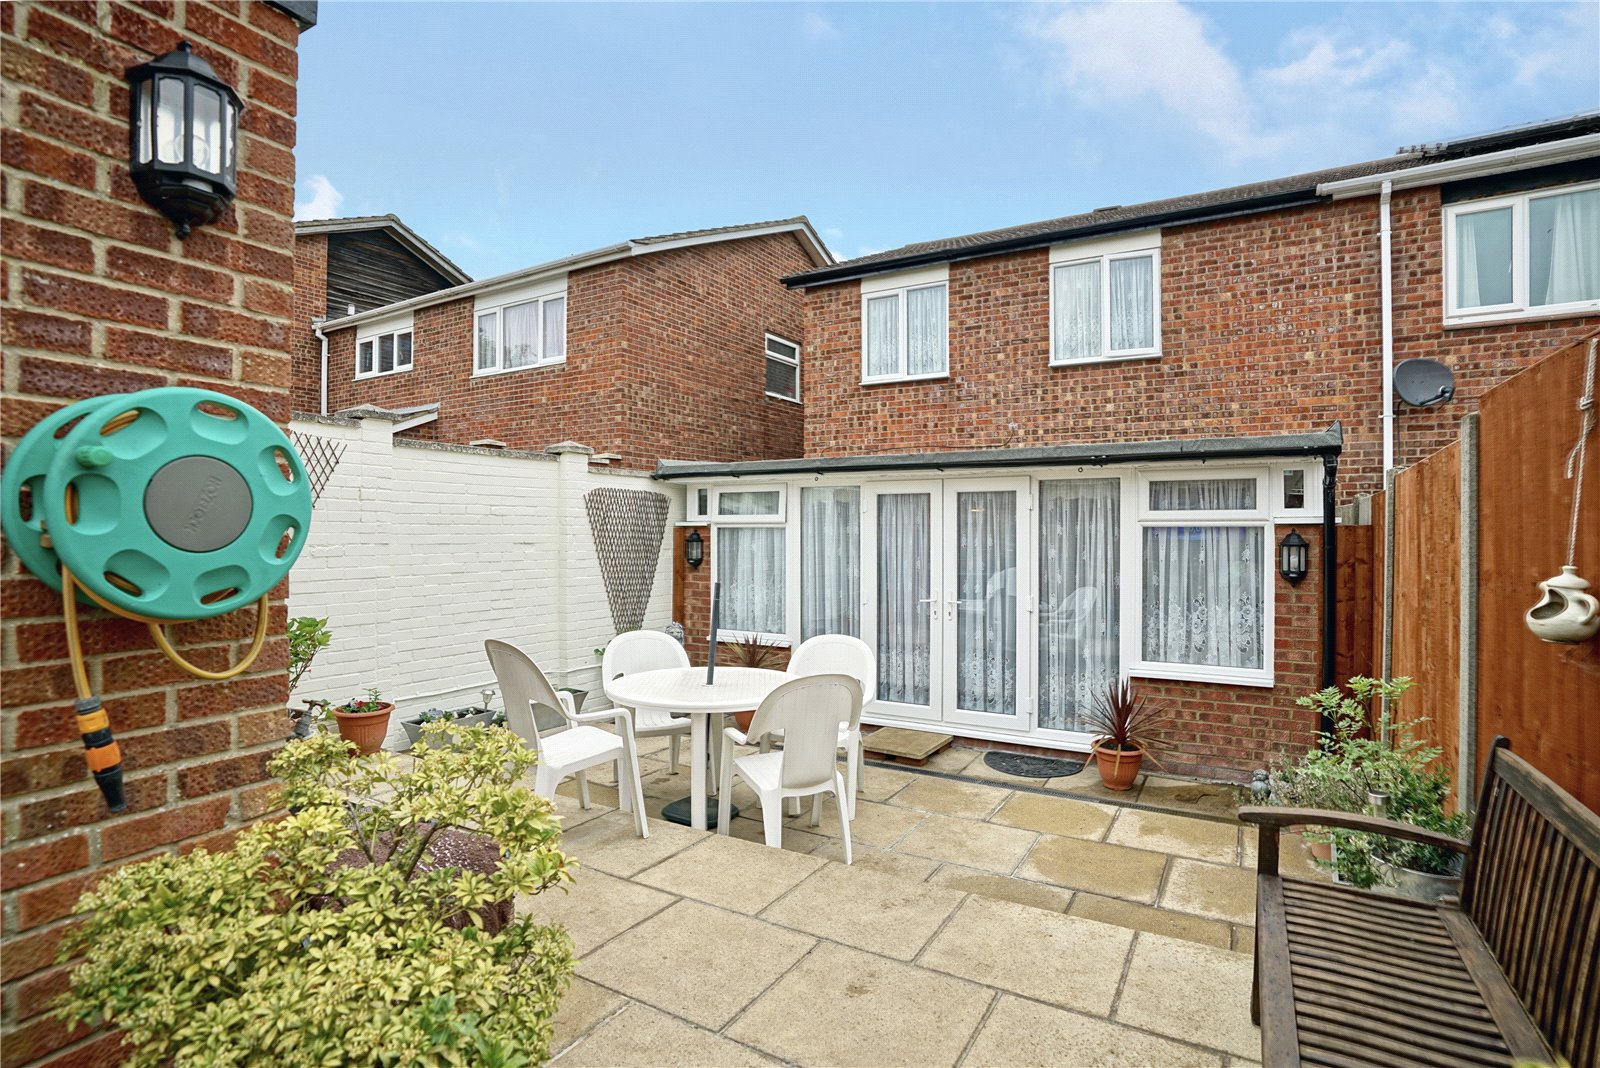 3 bed house for sale in Countess Close, Eaton Socon 5